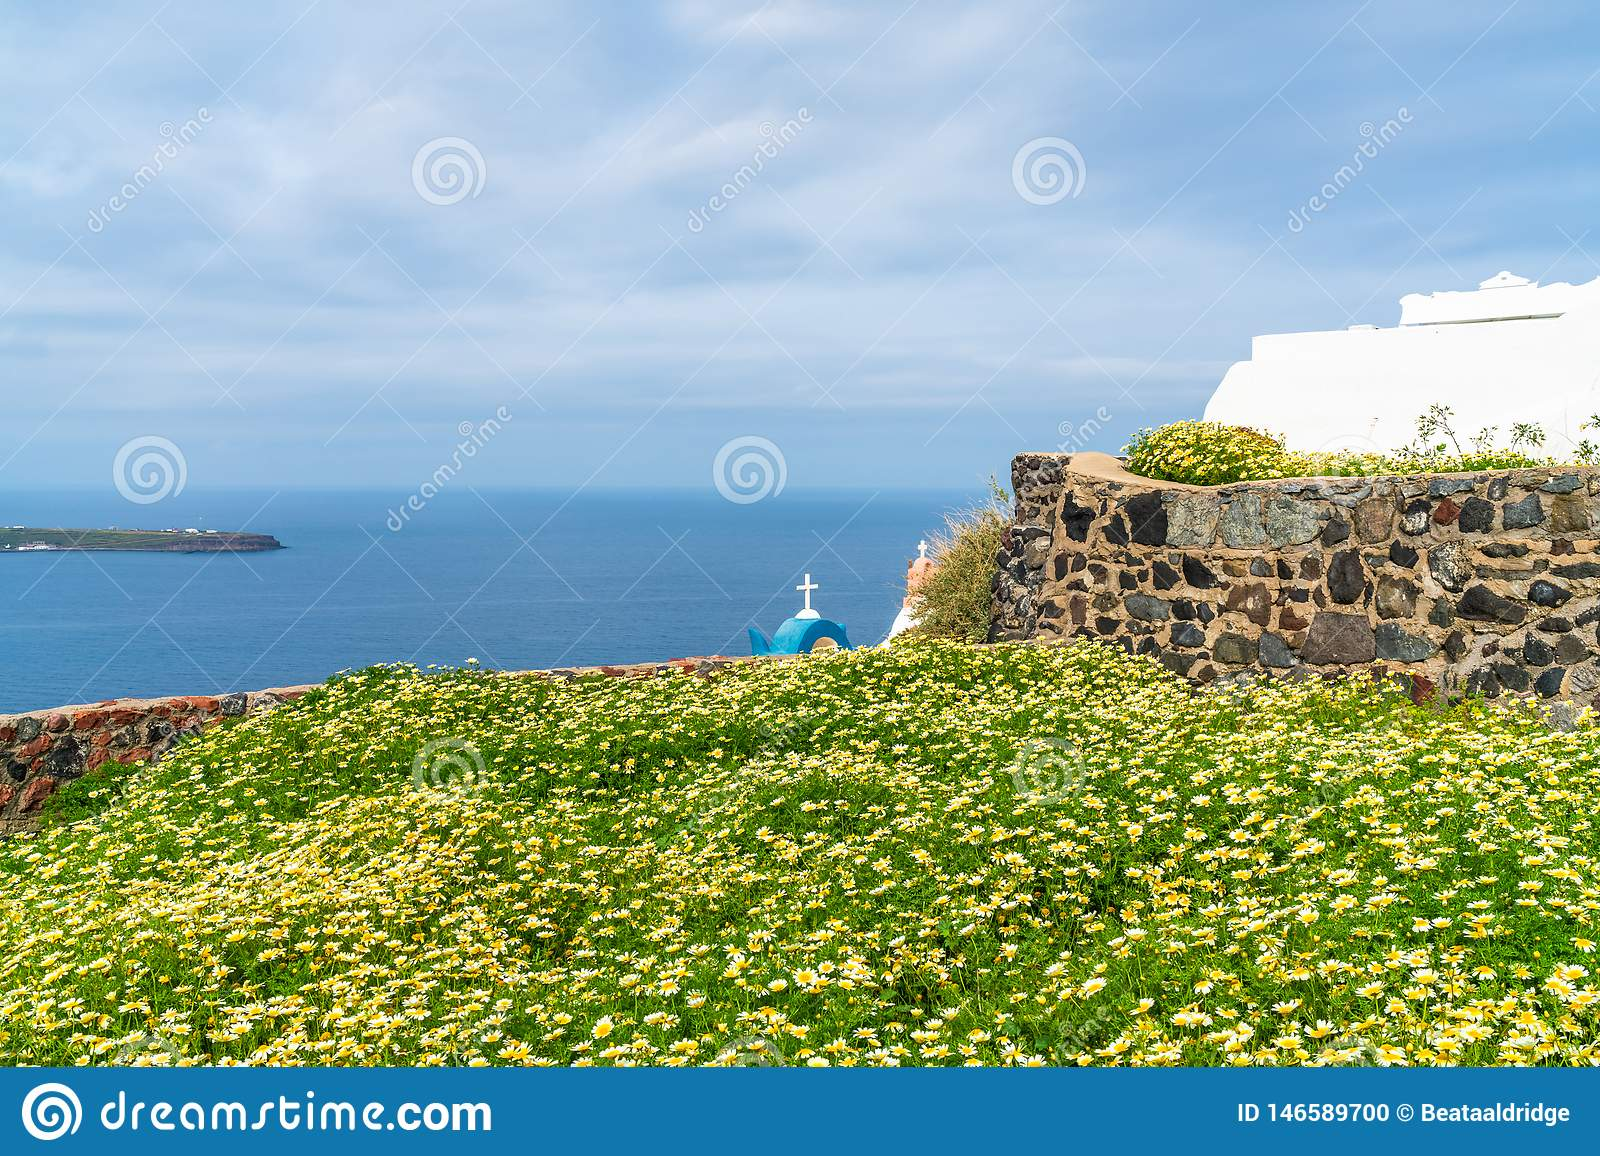 View of wild flowers and Aegean Sea in Oia, Santorini